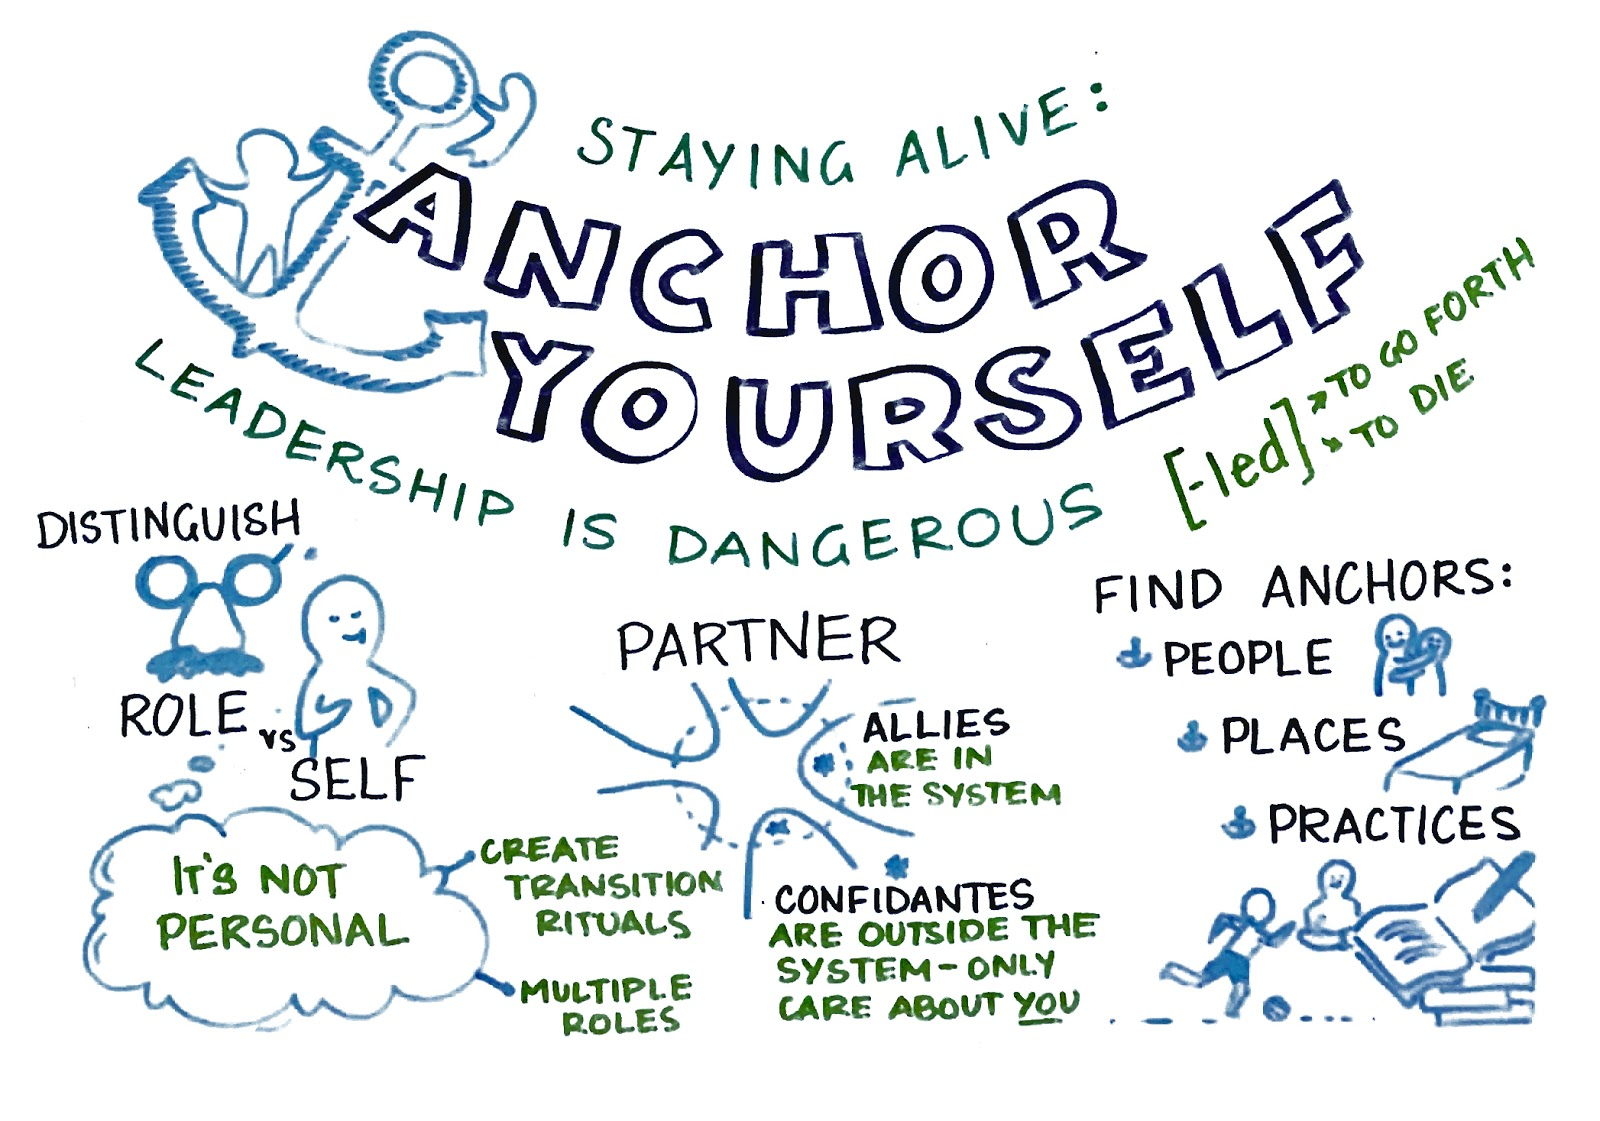 Staying Alive while practicing Leadership |  Adaptive Leadership Lab  notes © Rosi Greenberg